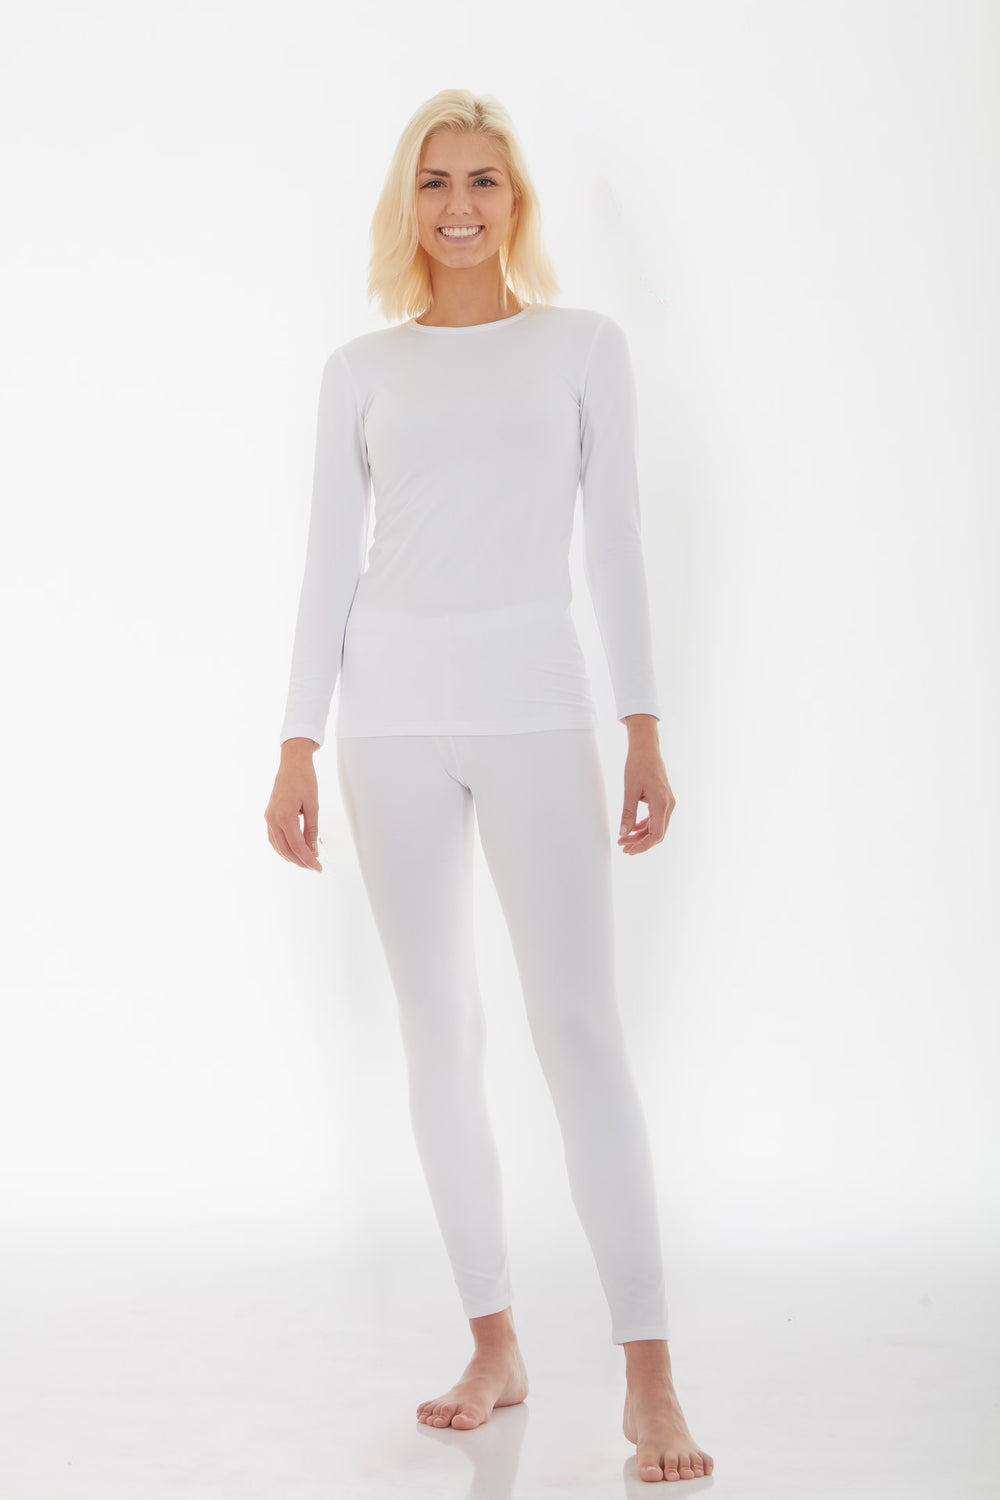 Women's Thermal White Underwear Set